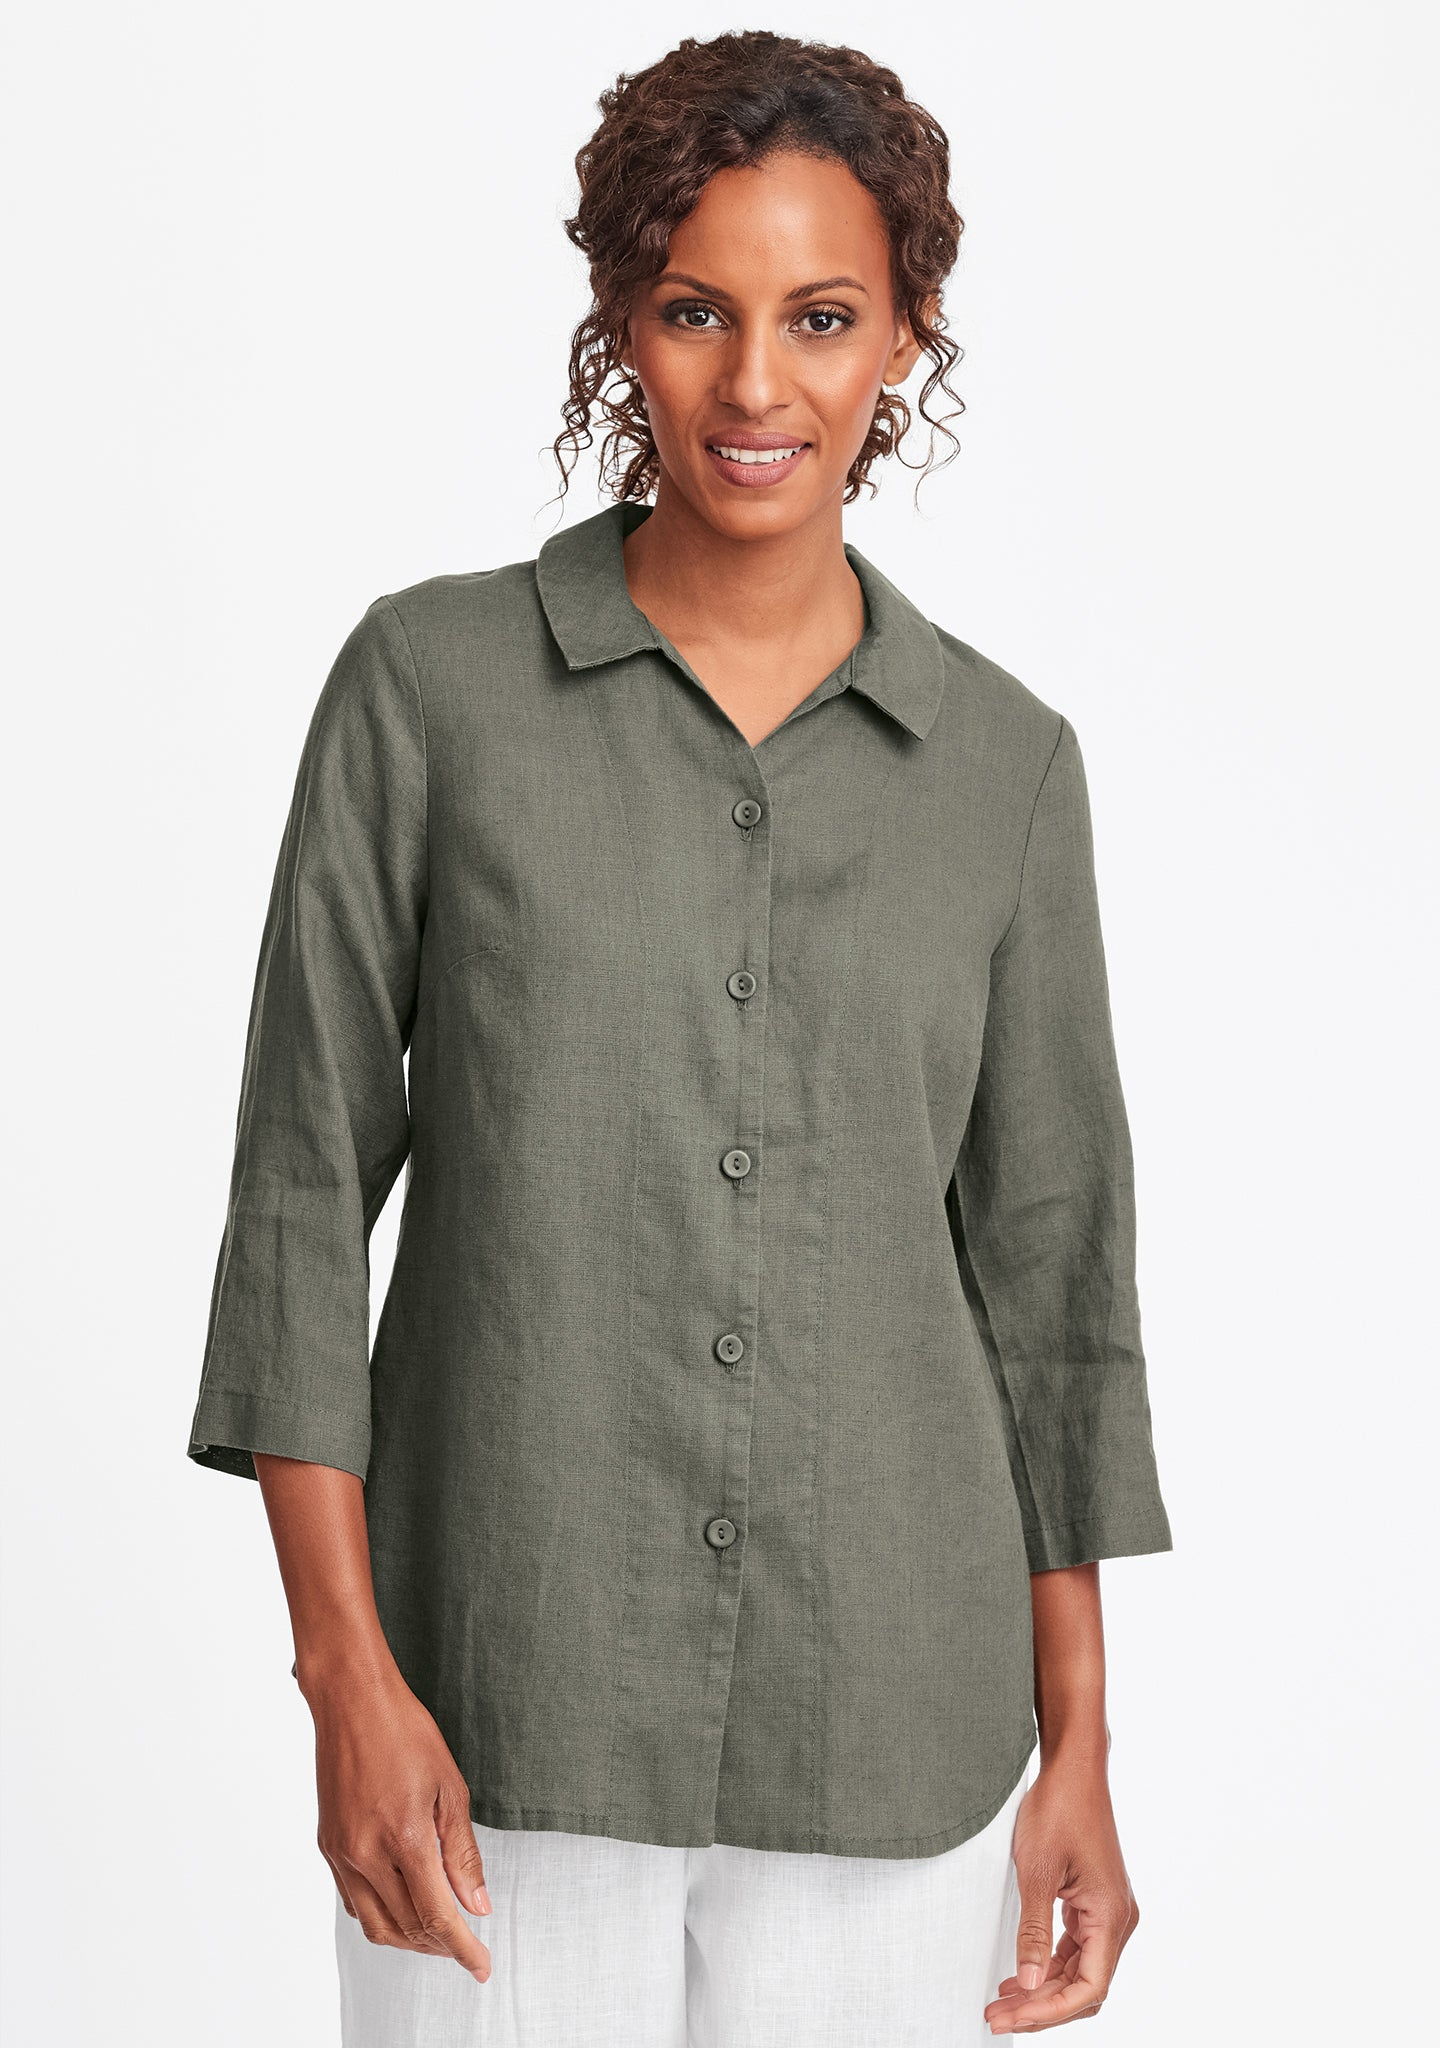 in-line blouse green